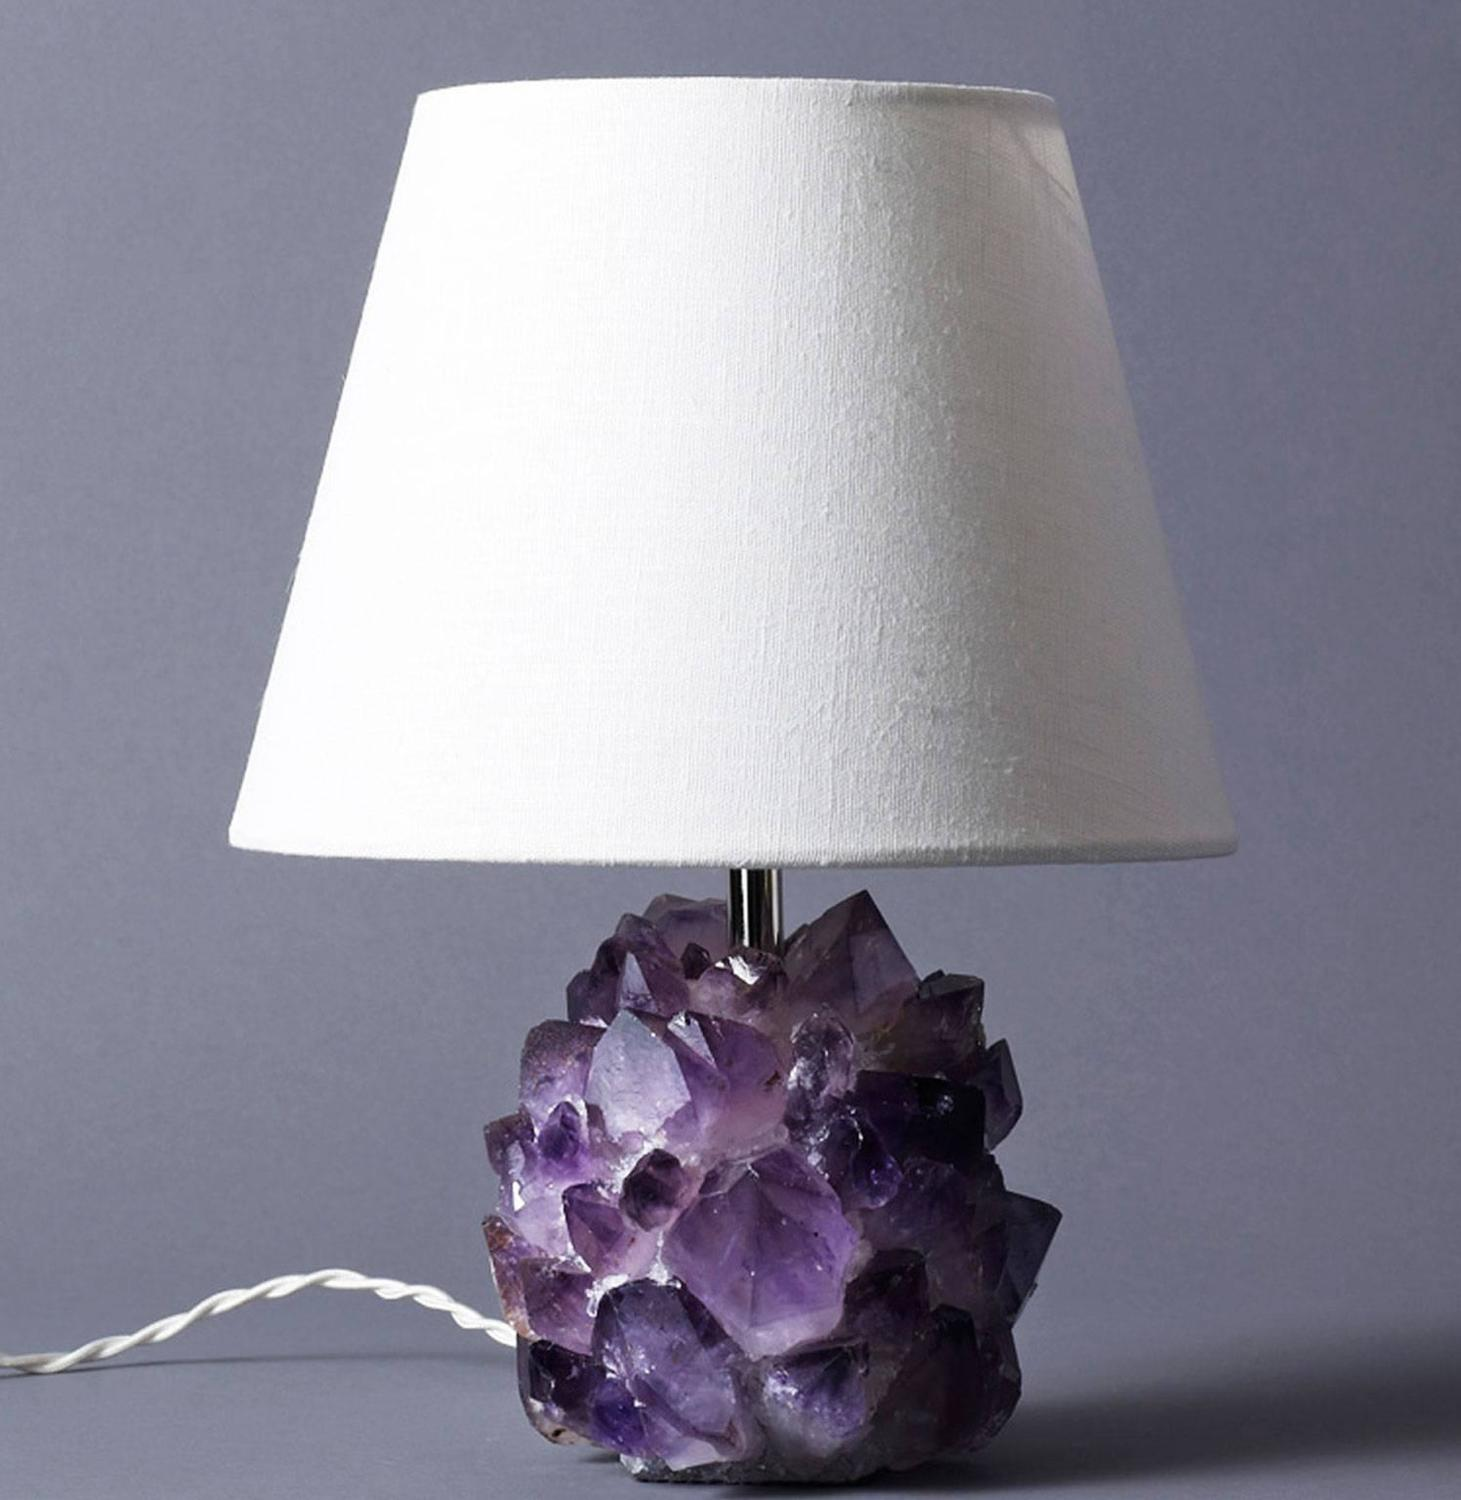 Crystal Stone Lamp Liz O 39brien Editions Amethyst Crystal Lamps For Sale At